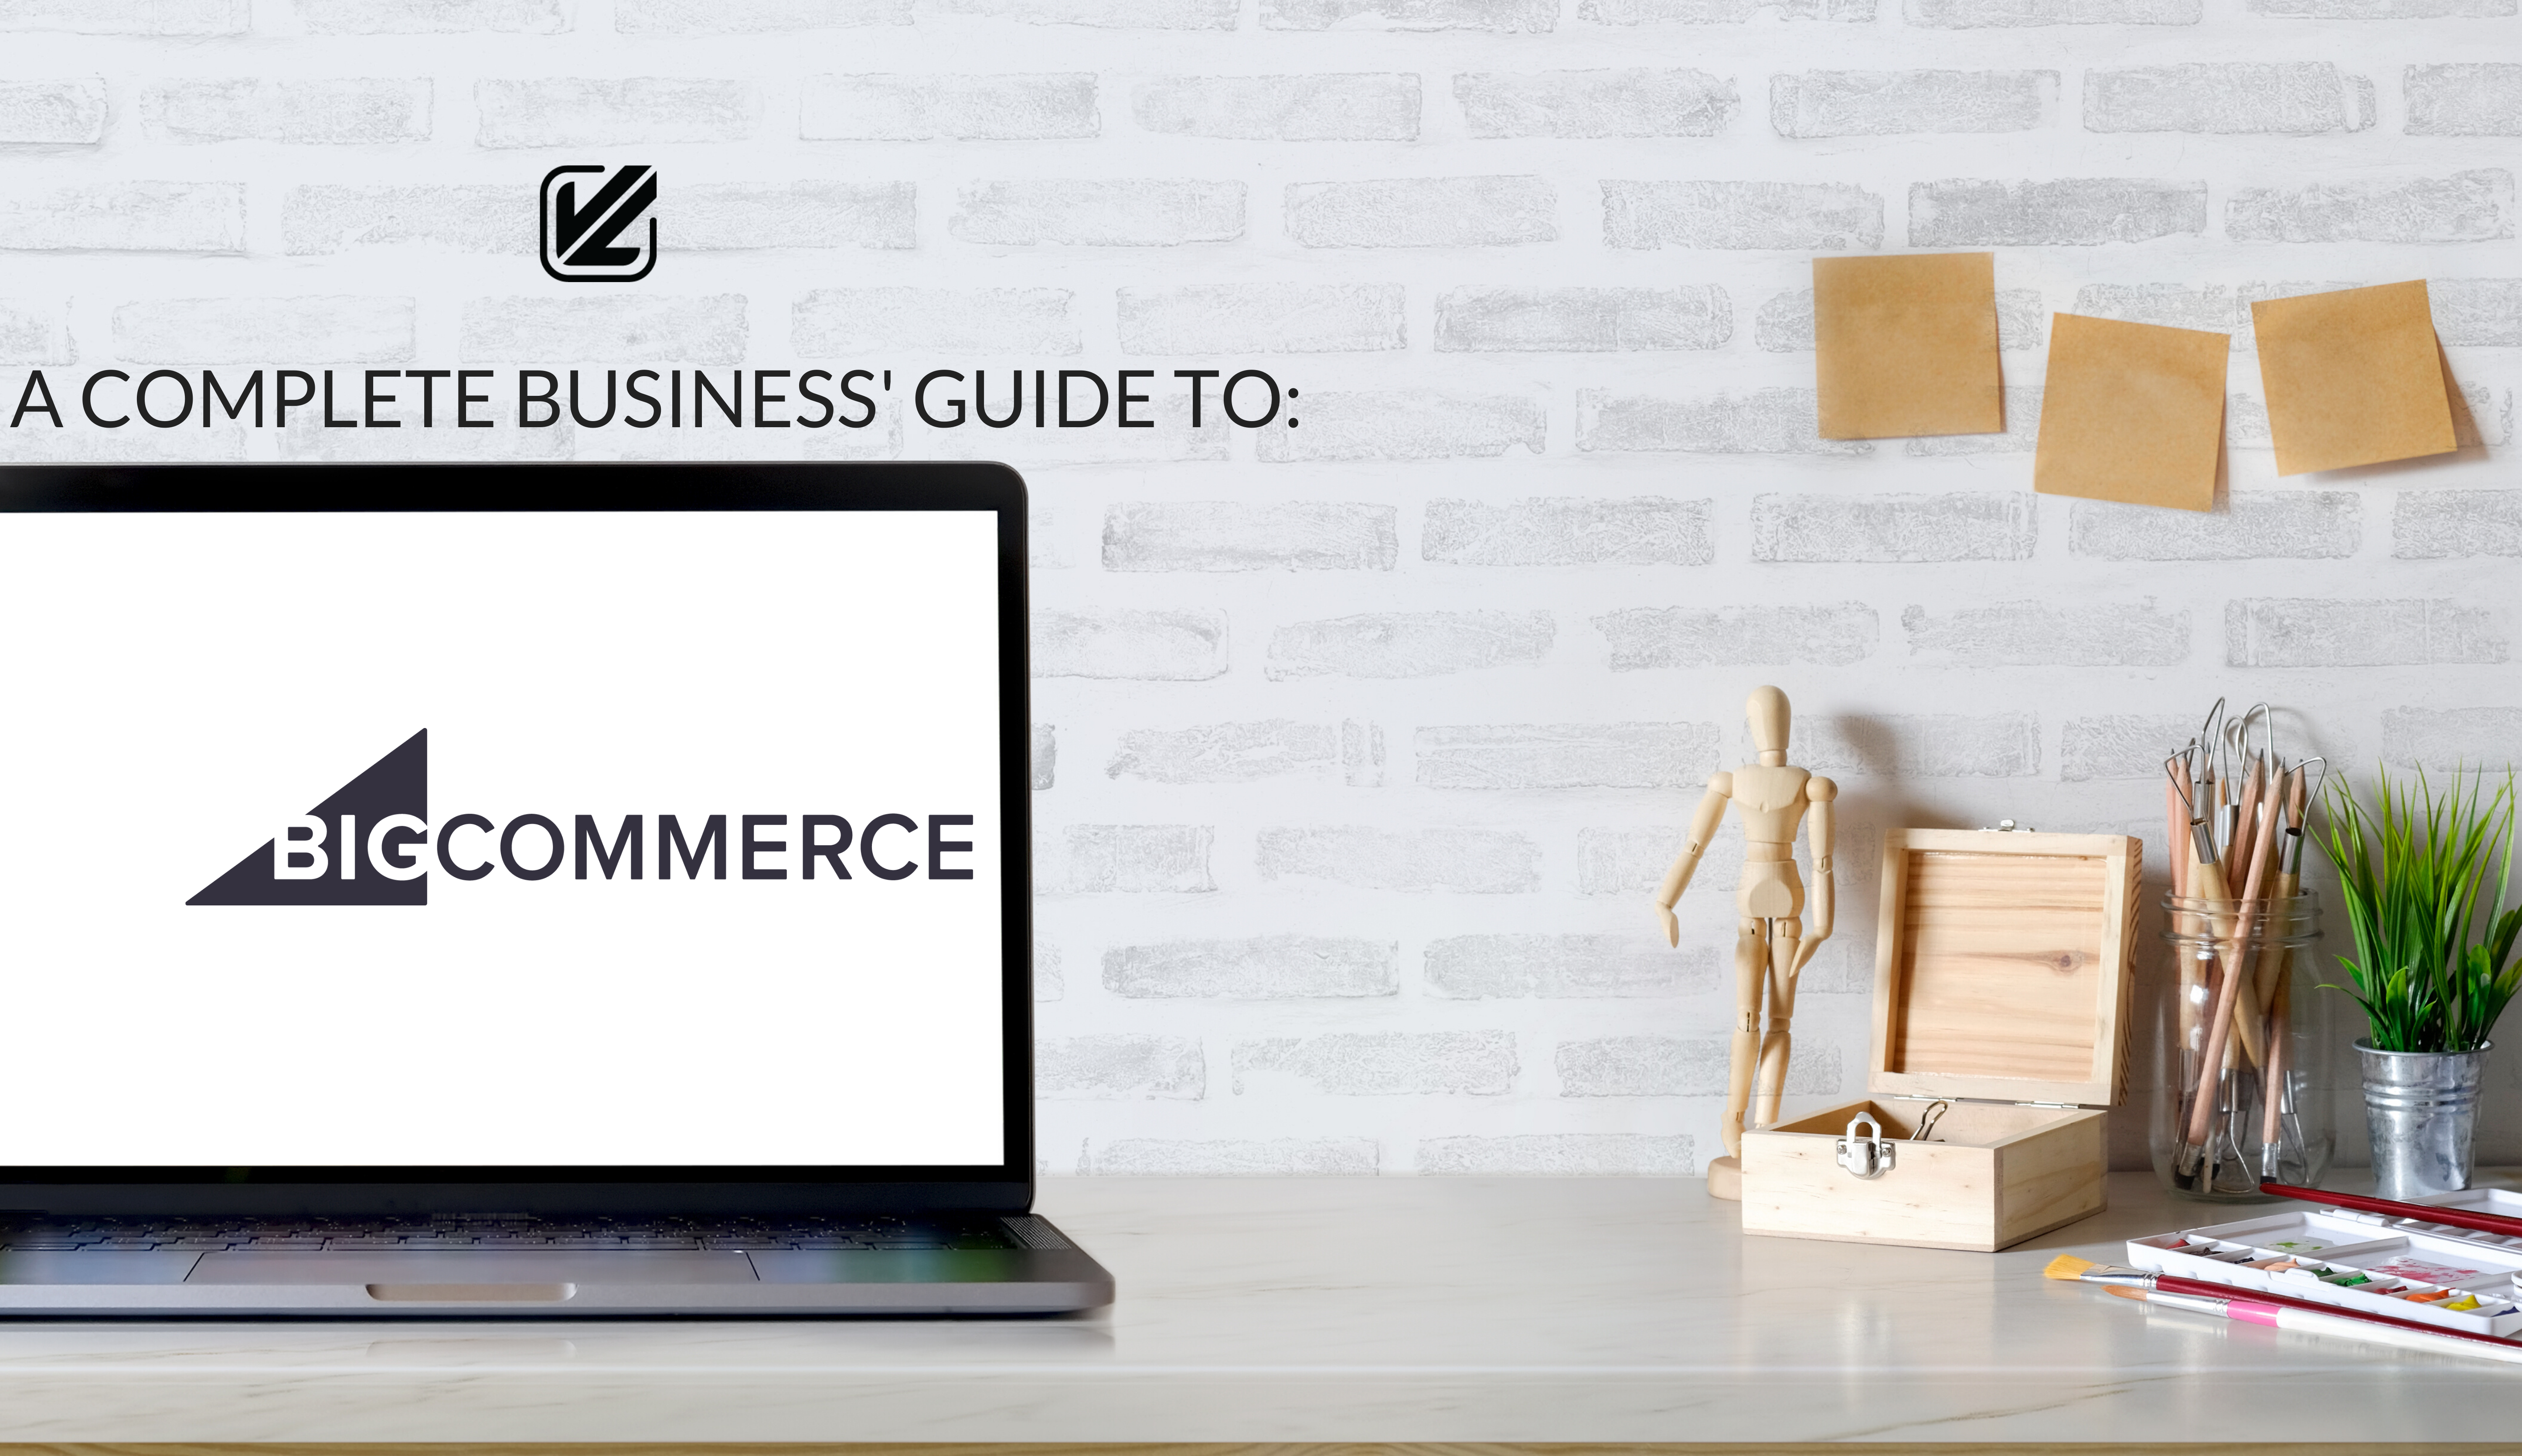 A Complete Business Guide to BigCommerce